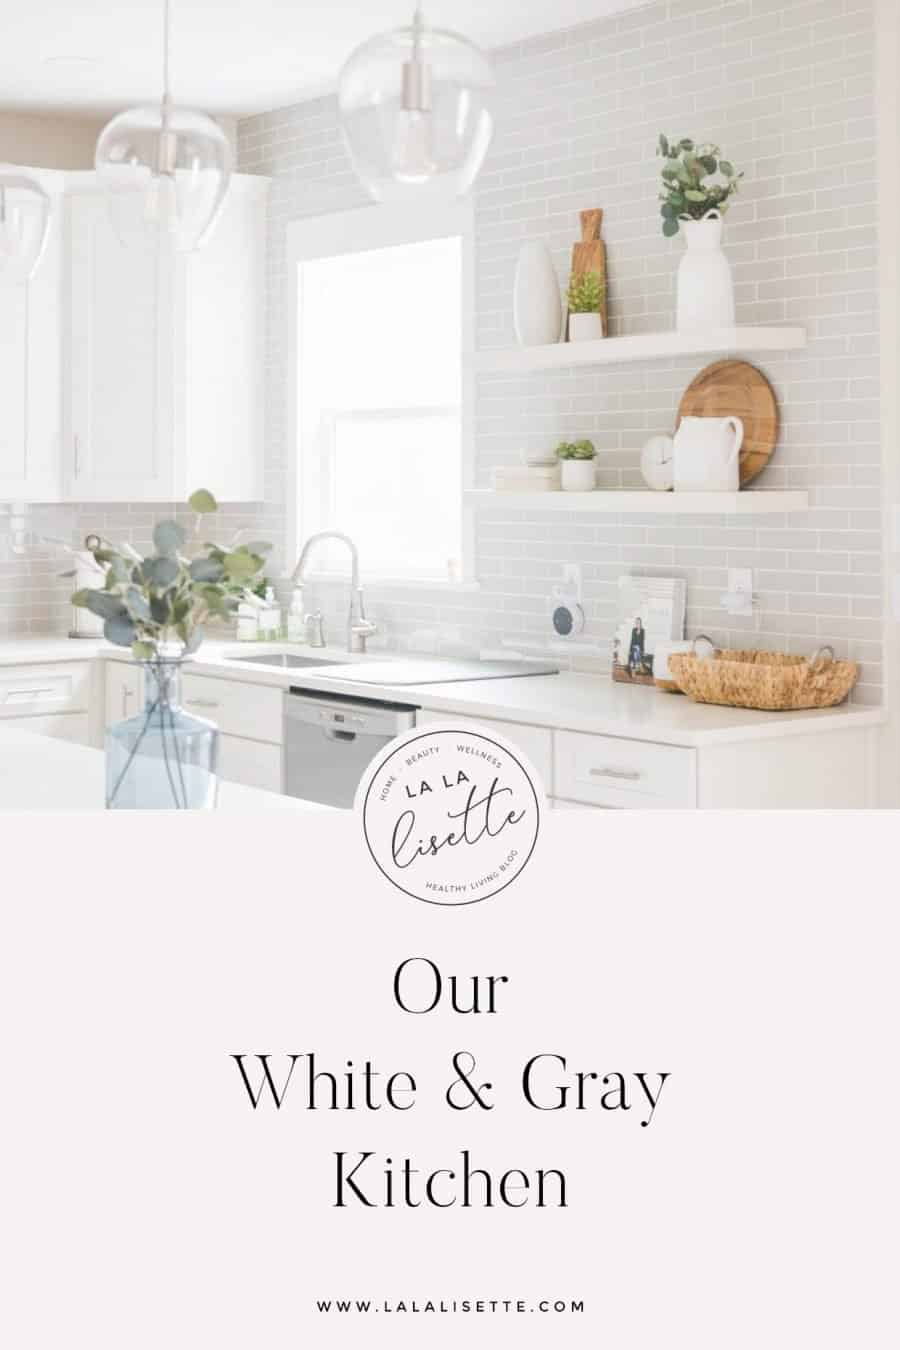 graphic of kitchen with text: Our White & Gray Kitchen